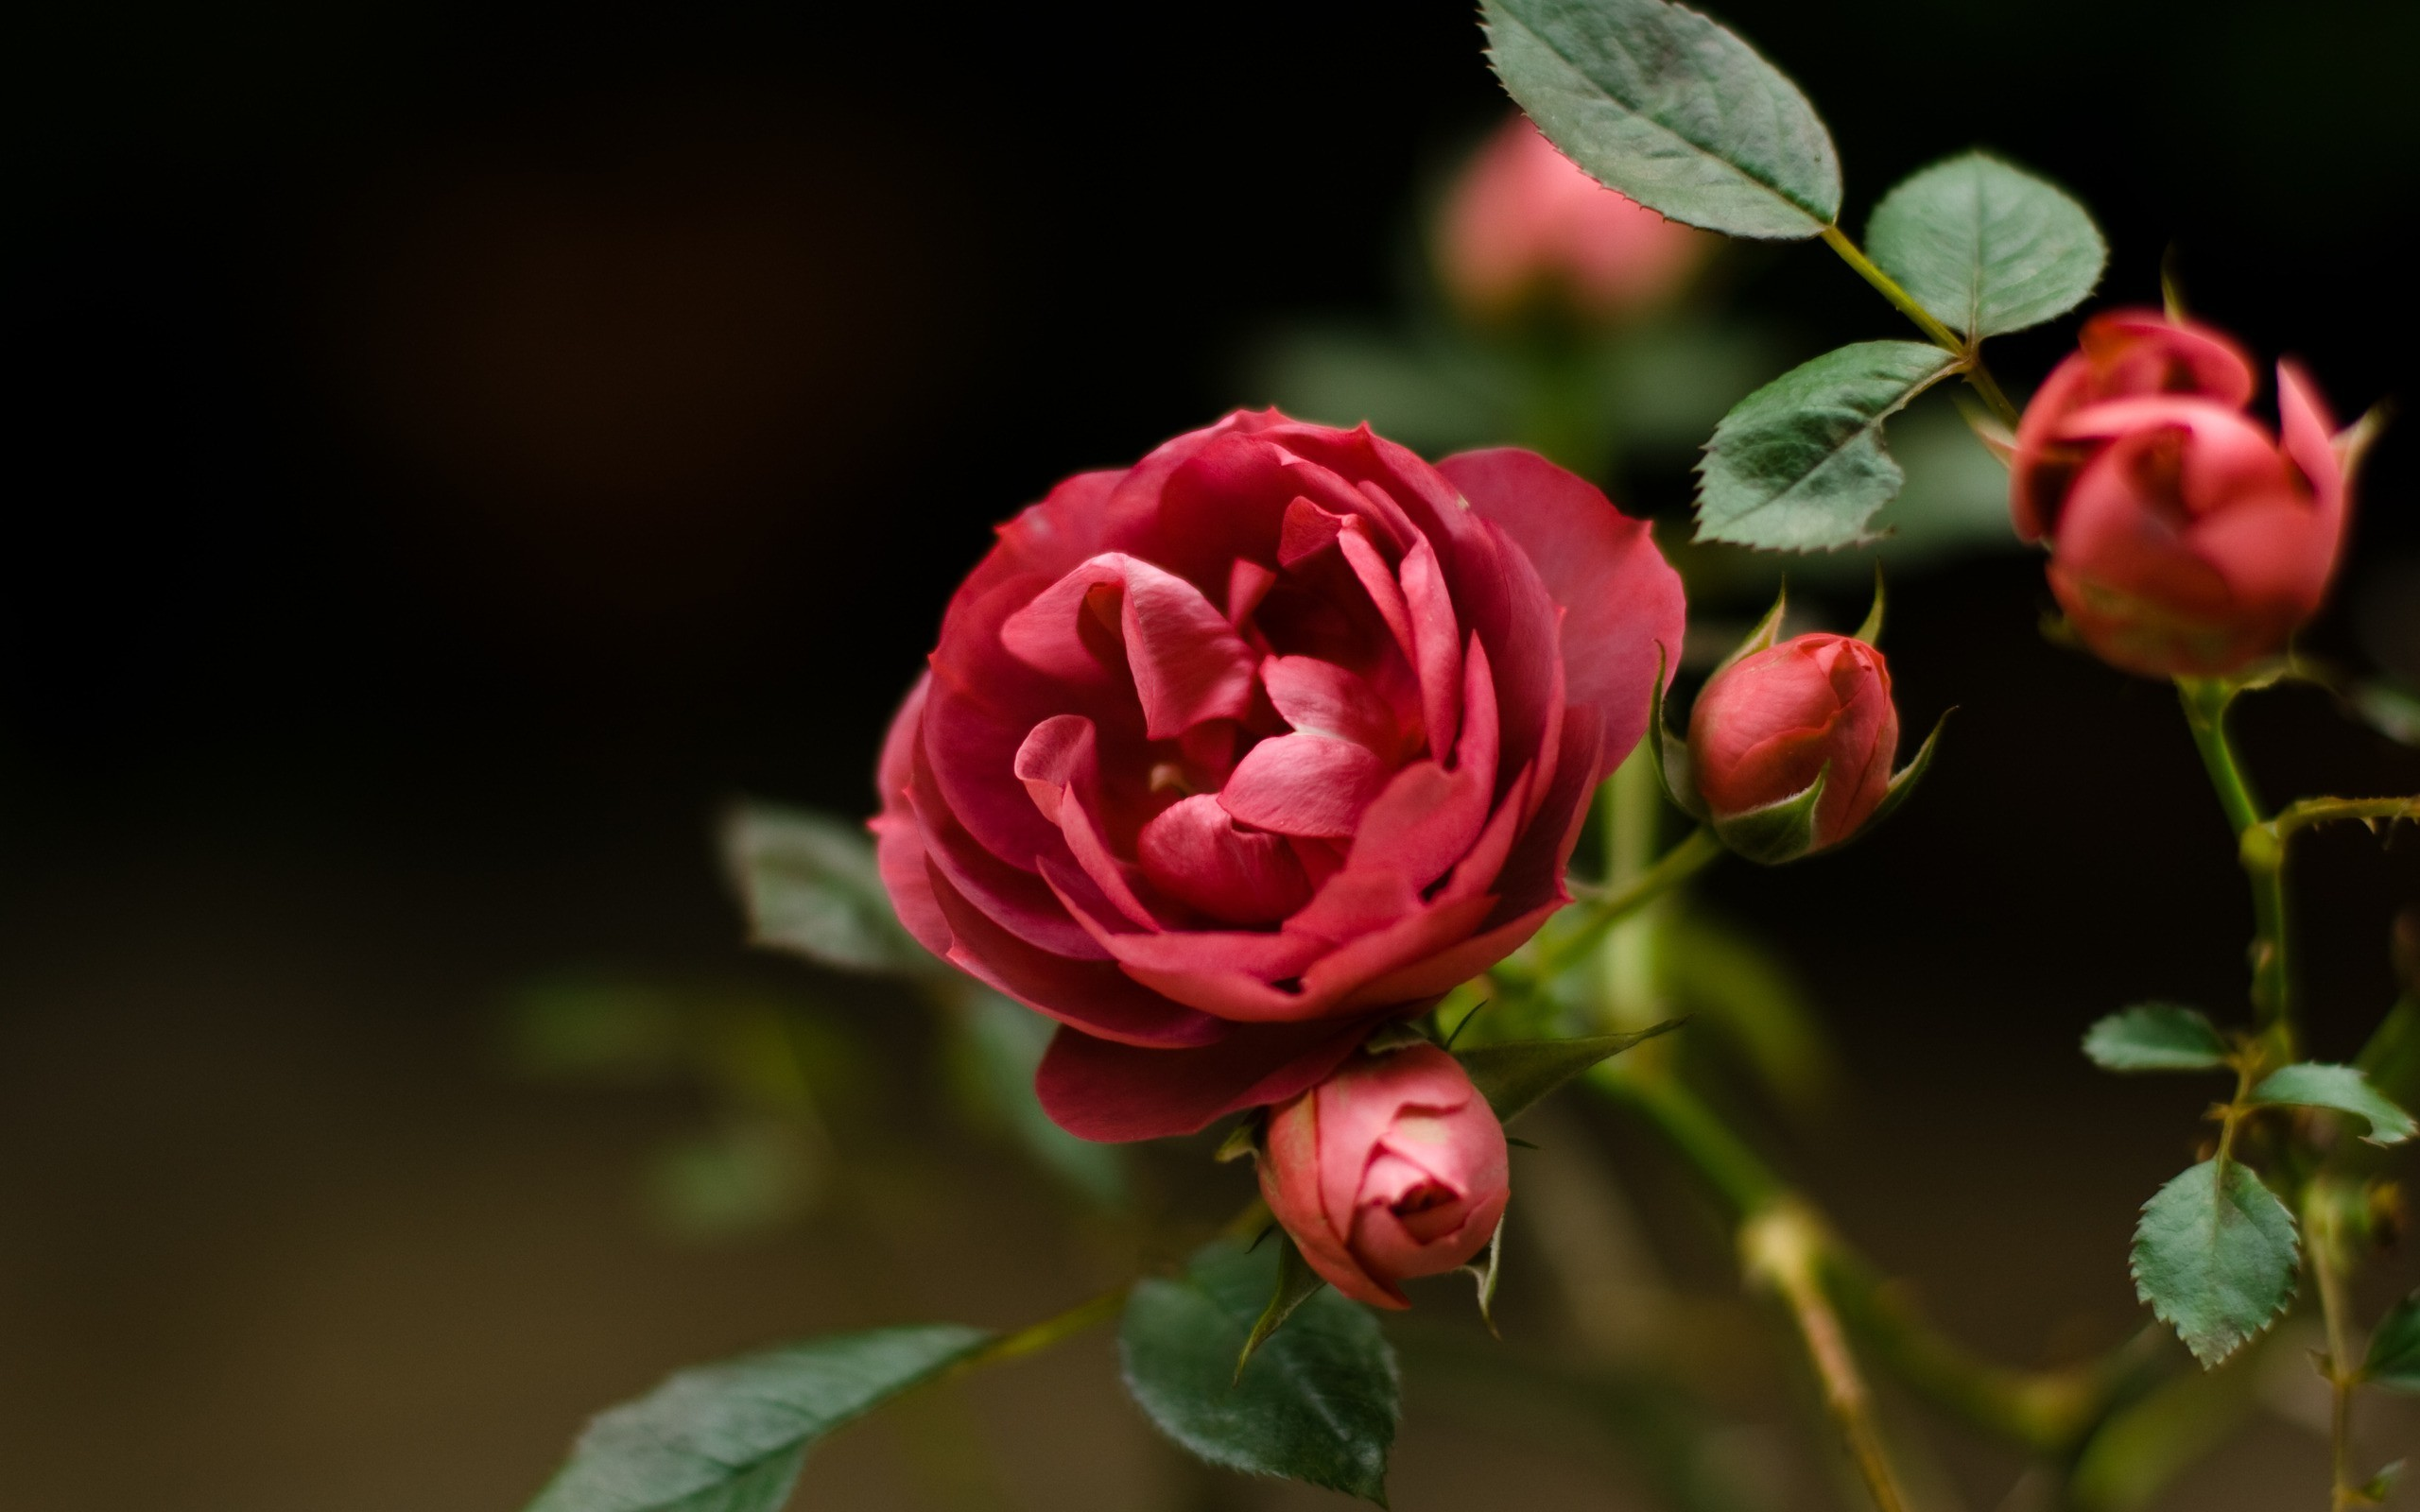 Wallpaper Rose Flower 68 Images 2560x1600 Most Beautiful Red Flowers Hd Wallpapers Bookvacationfo